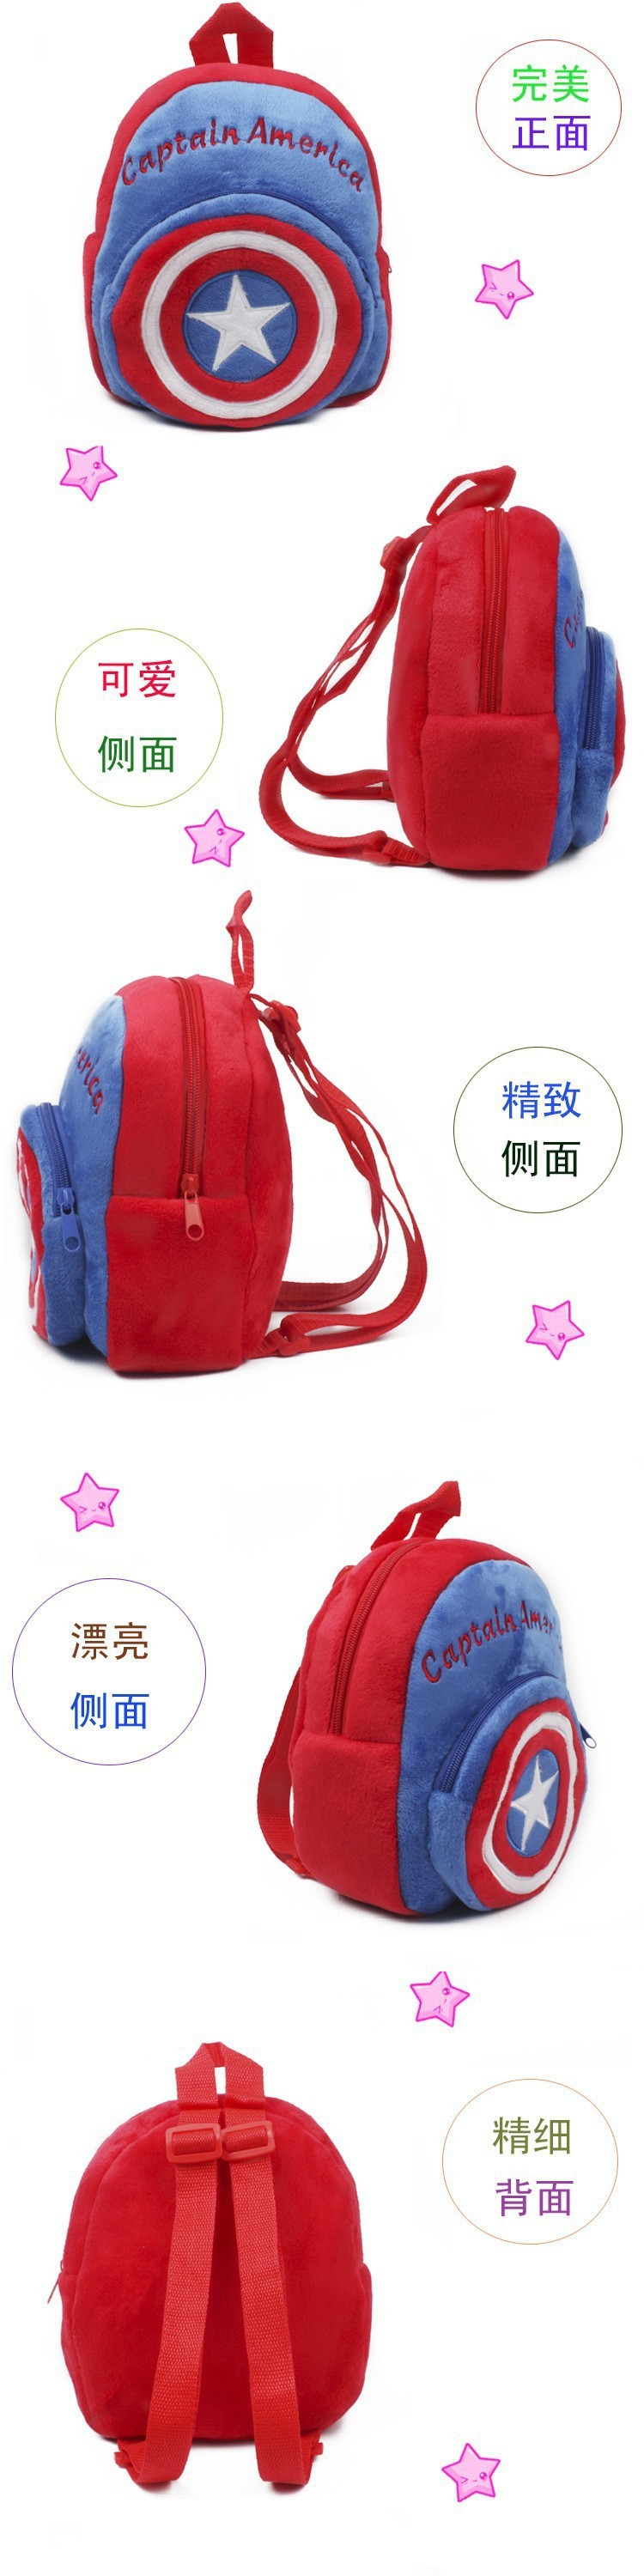 mochila Детский's gifts kindergarten boy backpack Plush baby Детский school bags design kid girls lovely K T plush toy bags